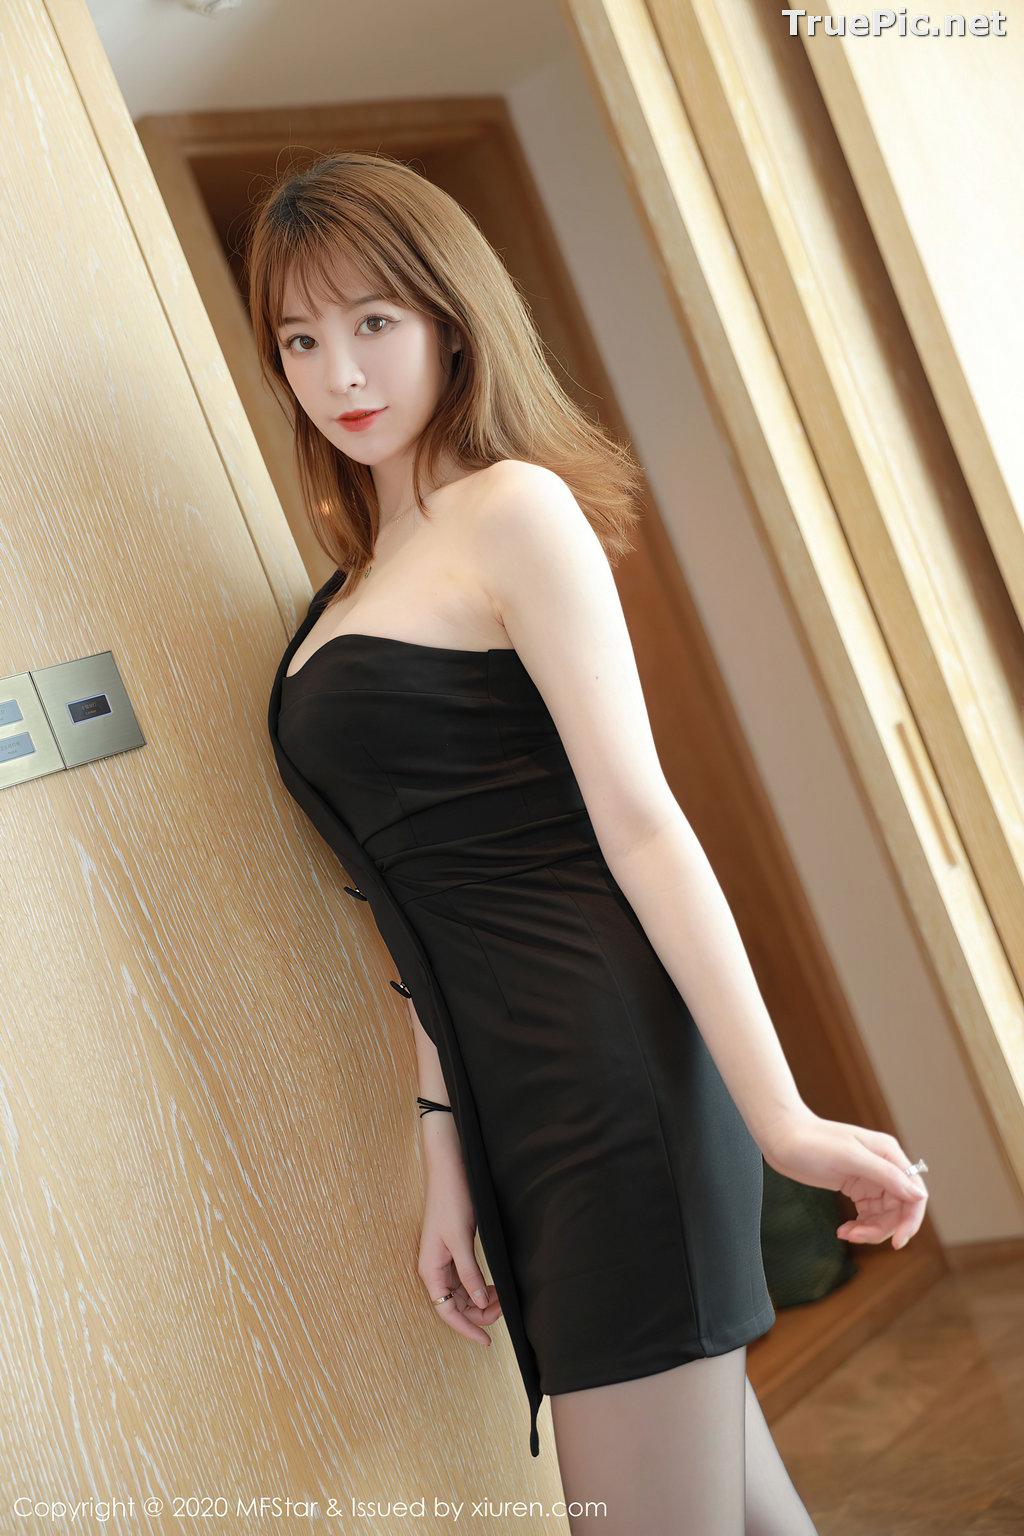 Image MFStar Vol.405 - Chinese Model - Yoo优优 - Hot Woman in Black - TruePic.net - Picture-5